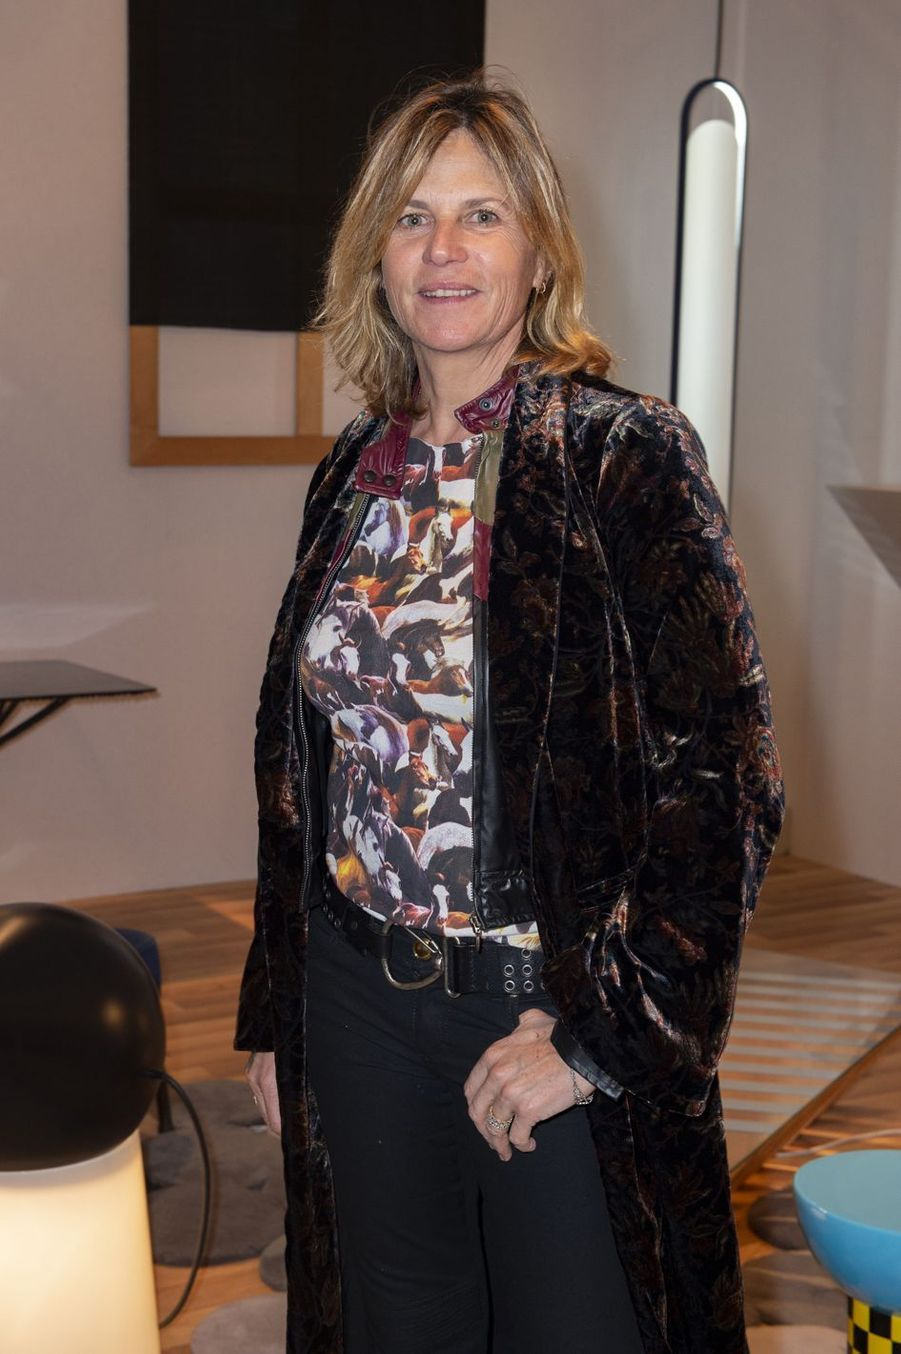 Virginie Coupérie-Eiffel lors du salon PAD (Paris Art Design) à Paris le 3 avril 2019.